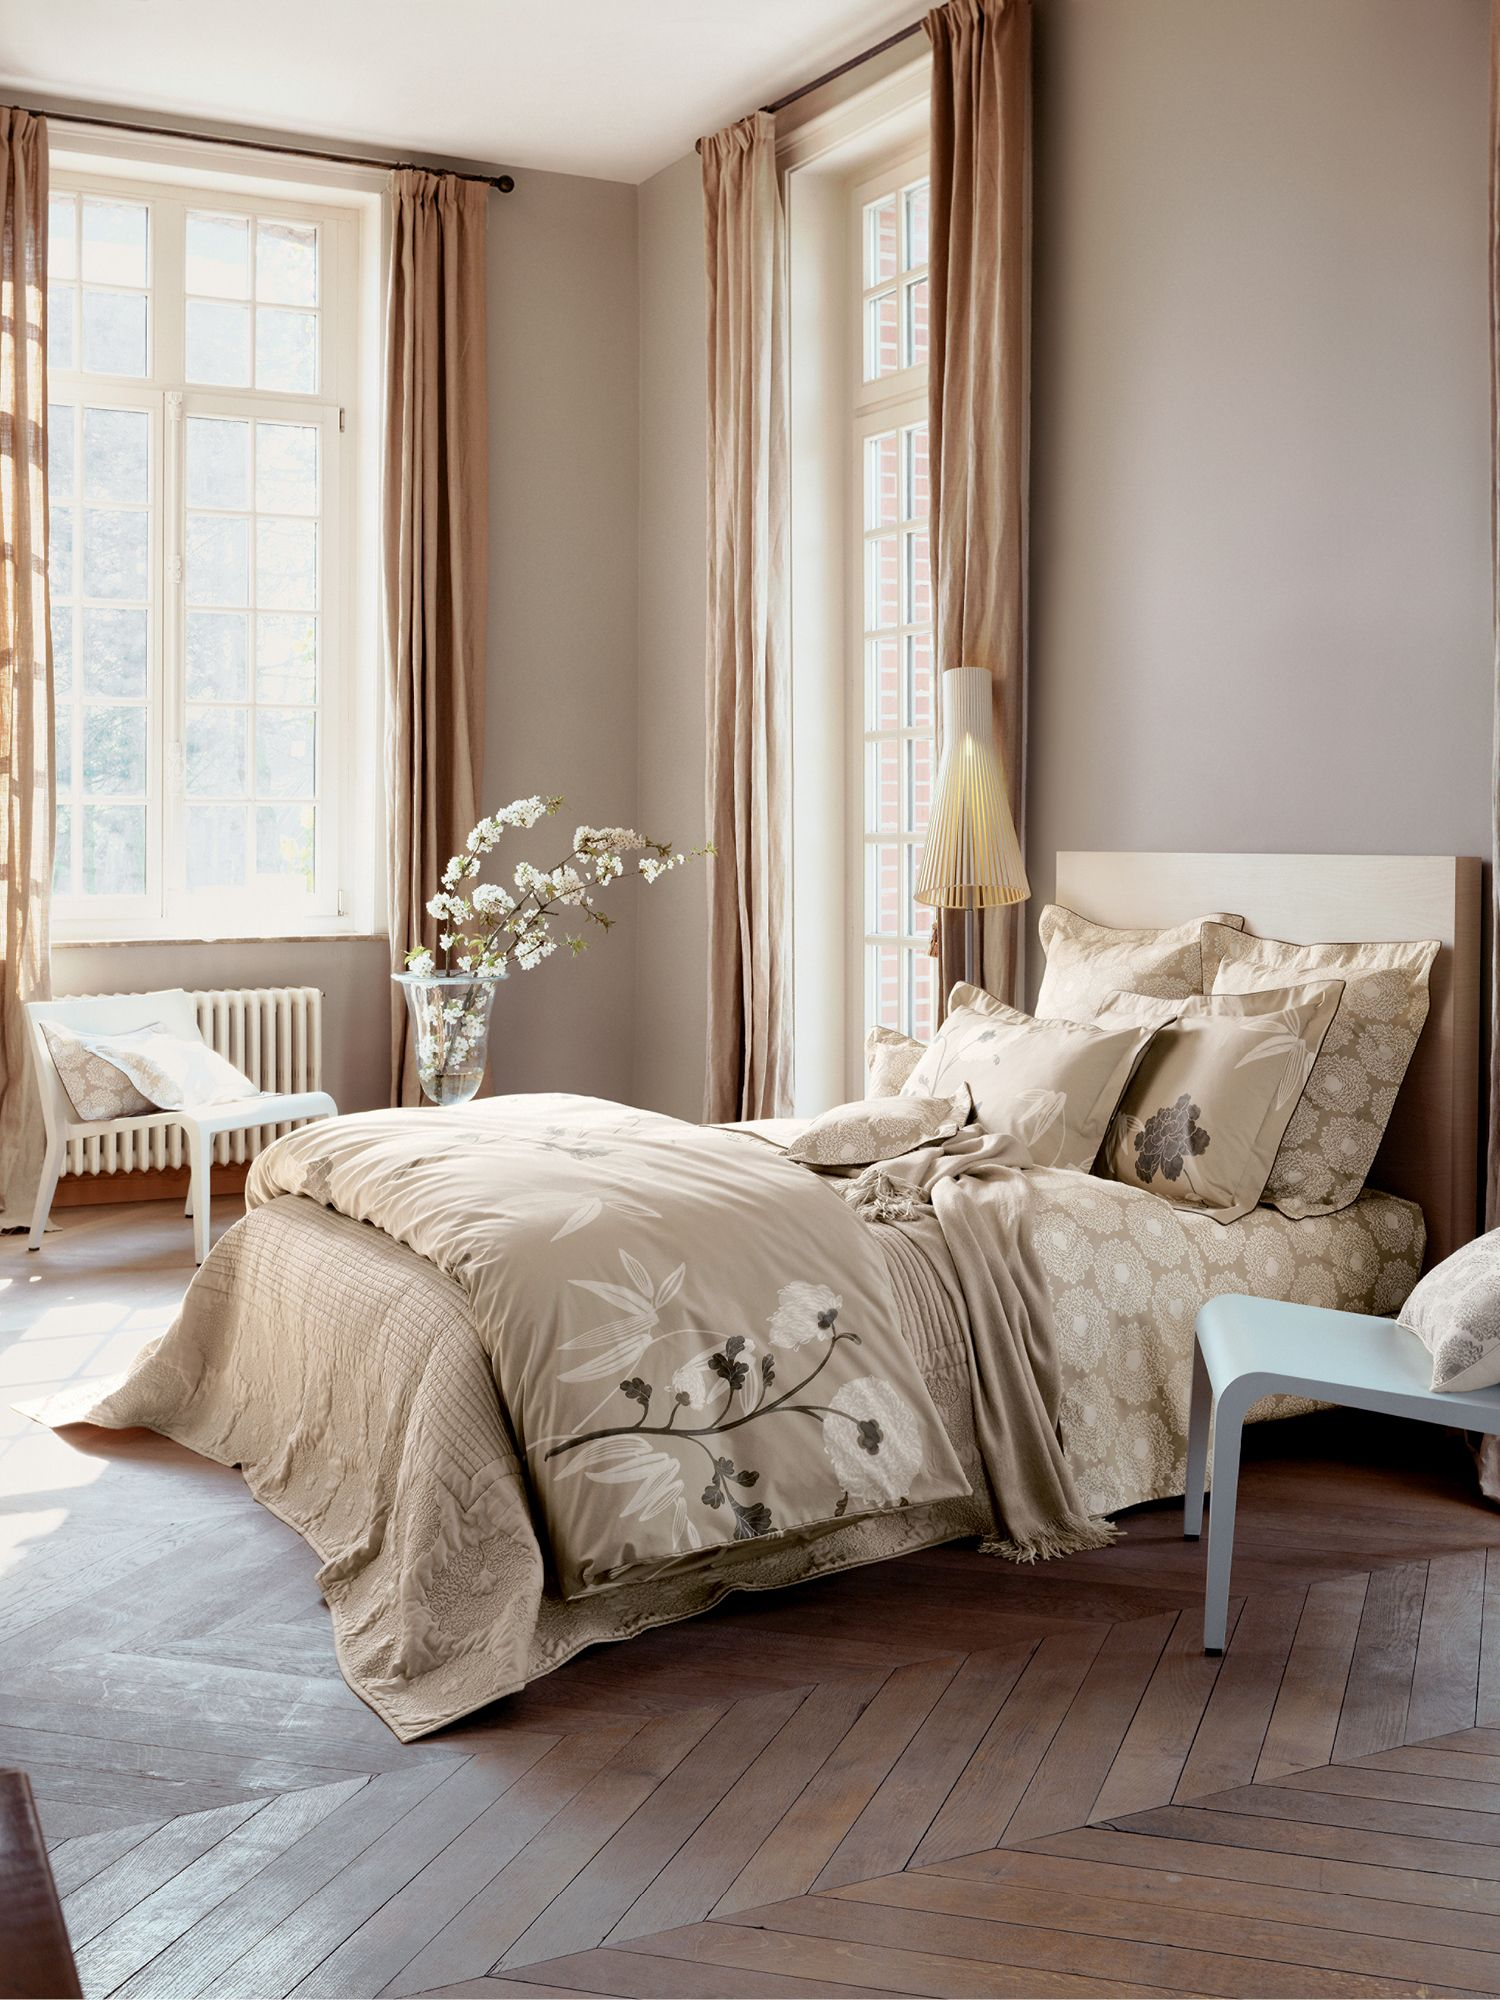 Yves delorme vice versa bedding sale compare uk prices for Yves delorme